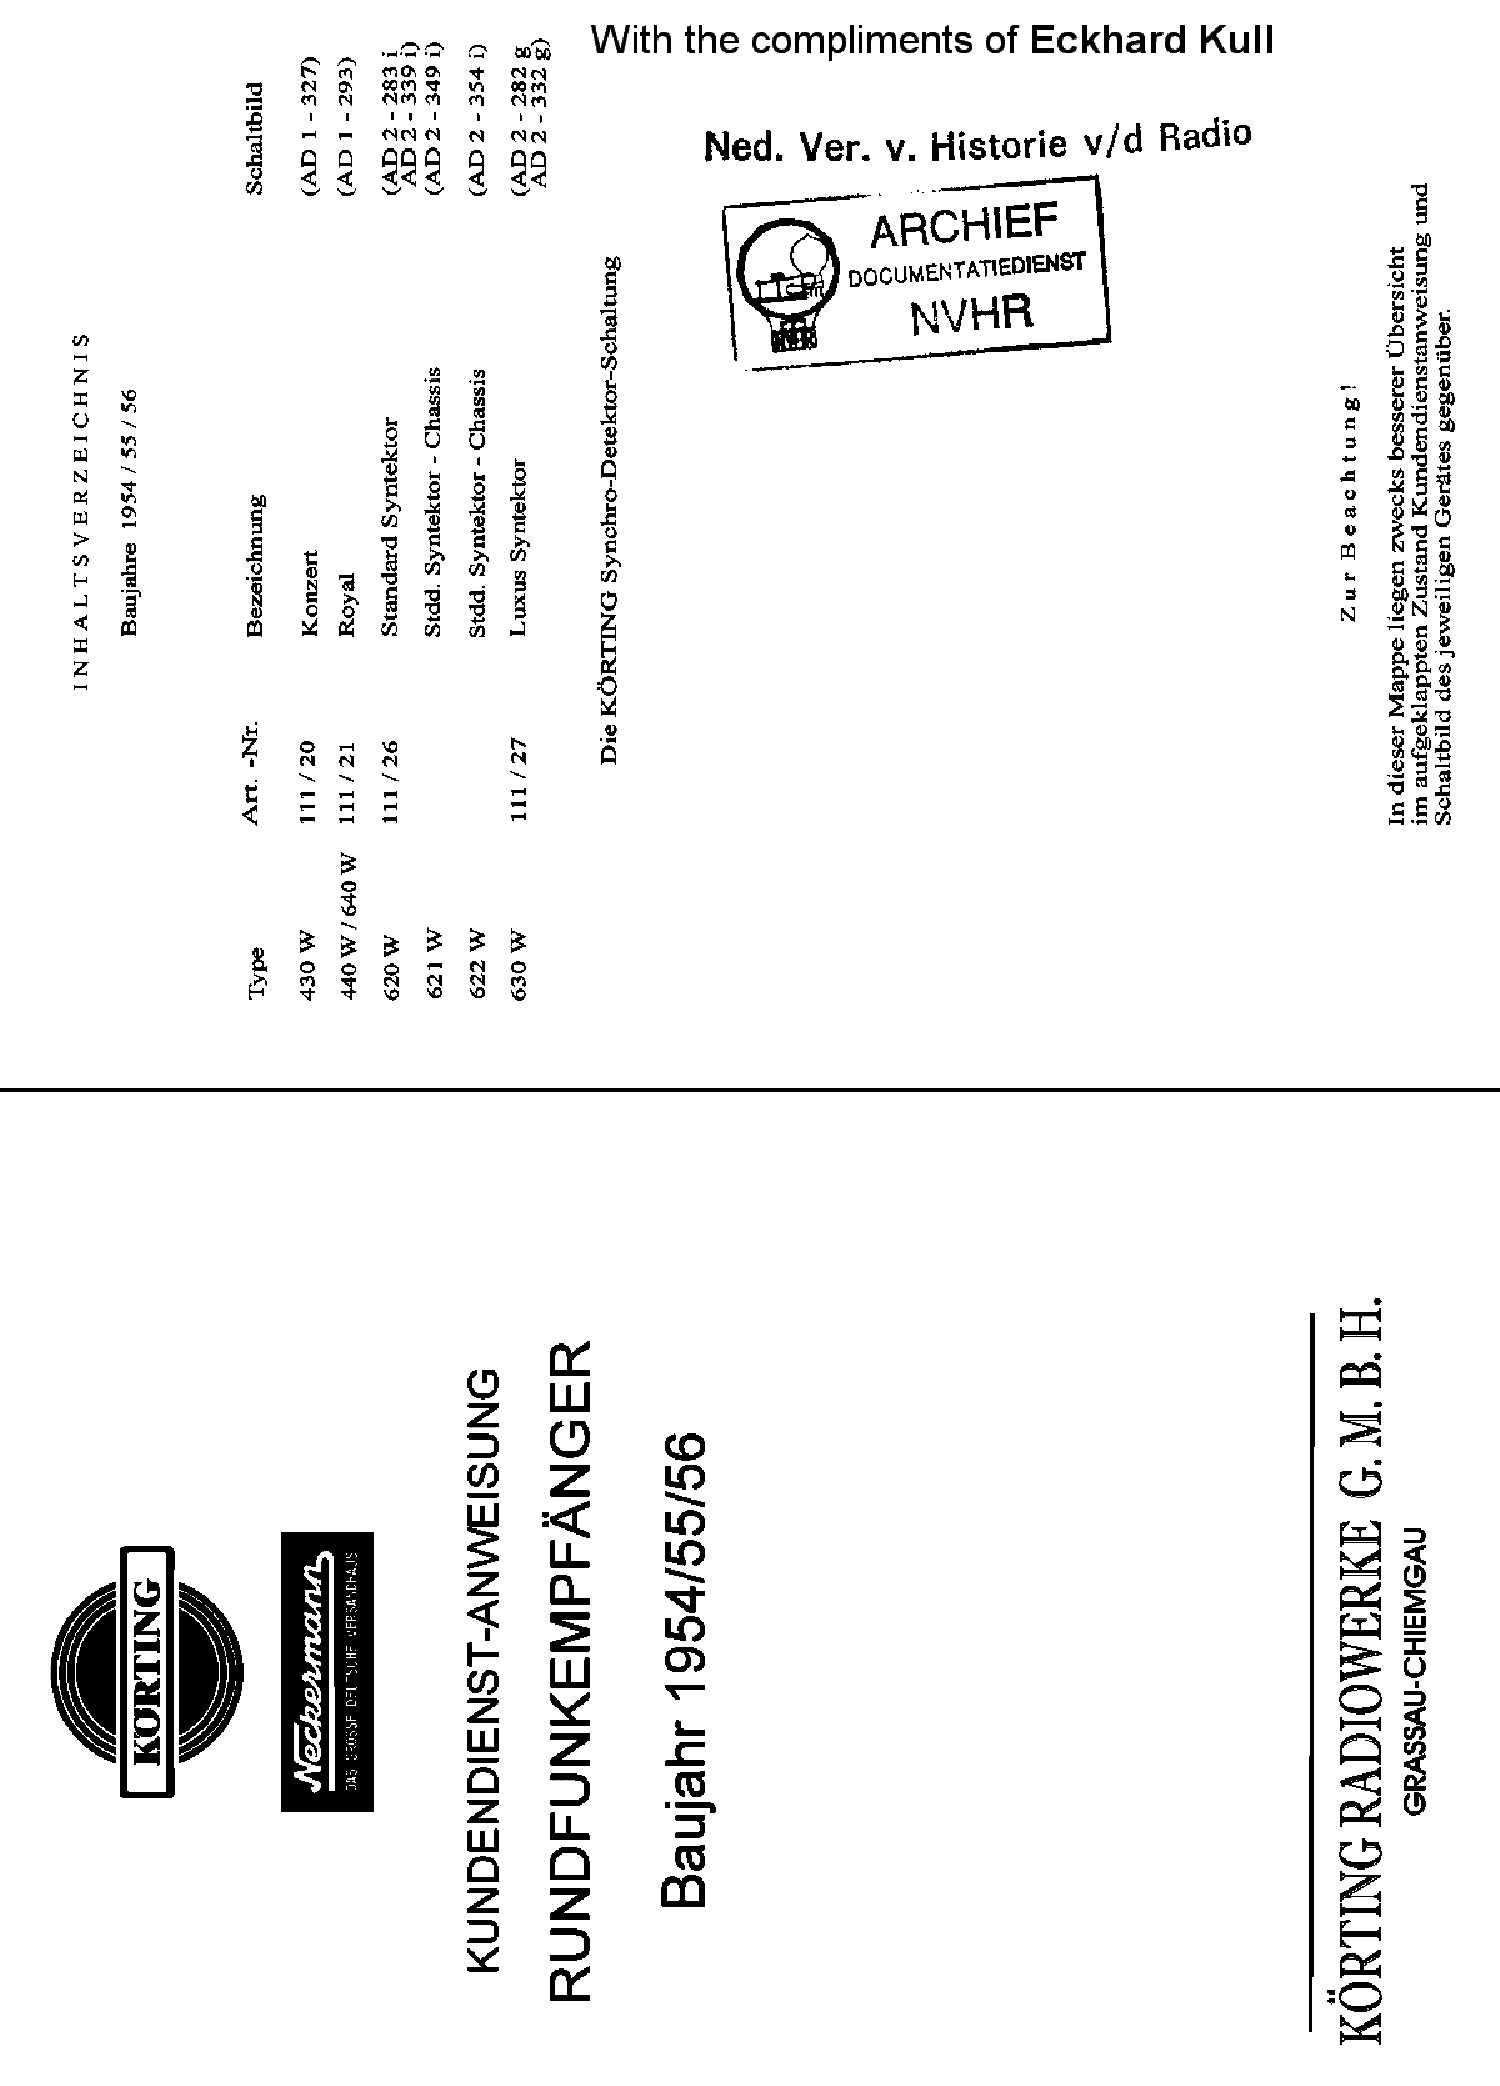 KORTING 630W LUXUS SYNTEKTOR AM-FM RECEIVER SM service manual (1st page)